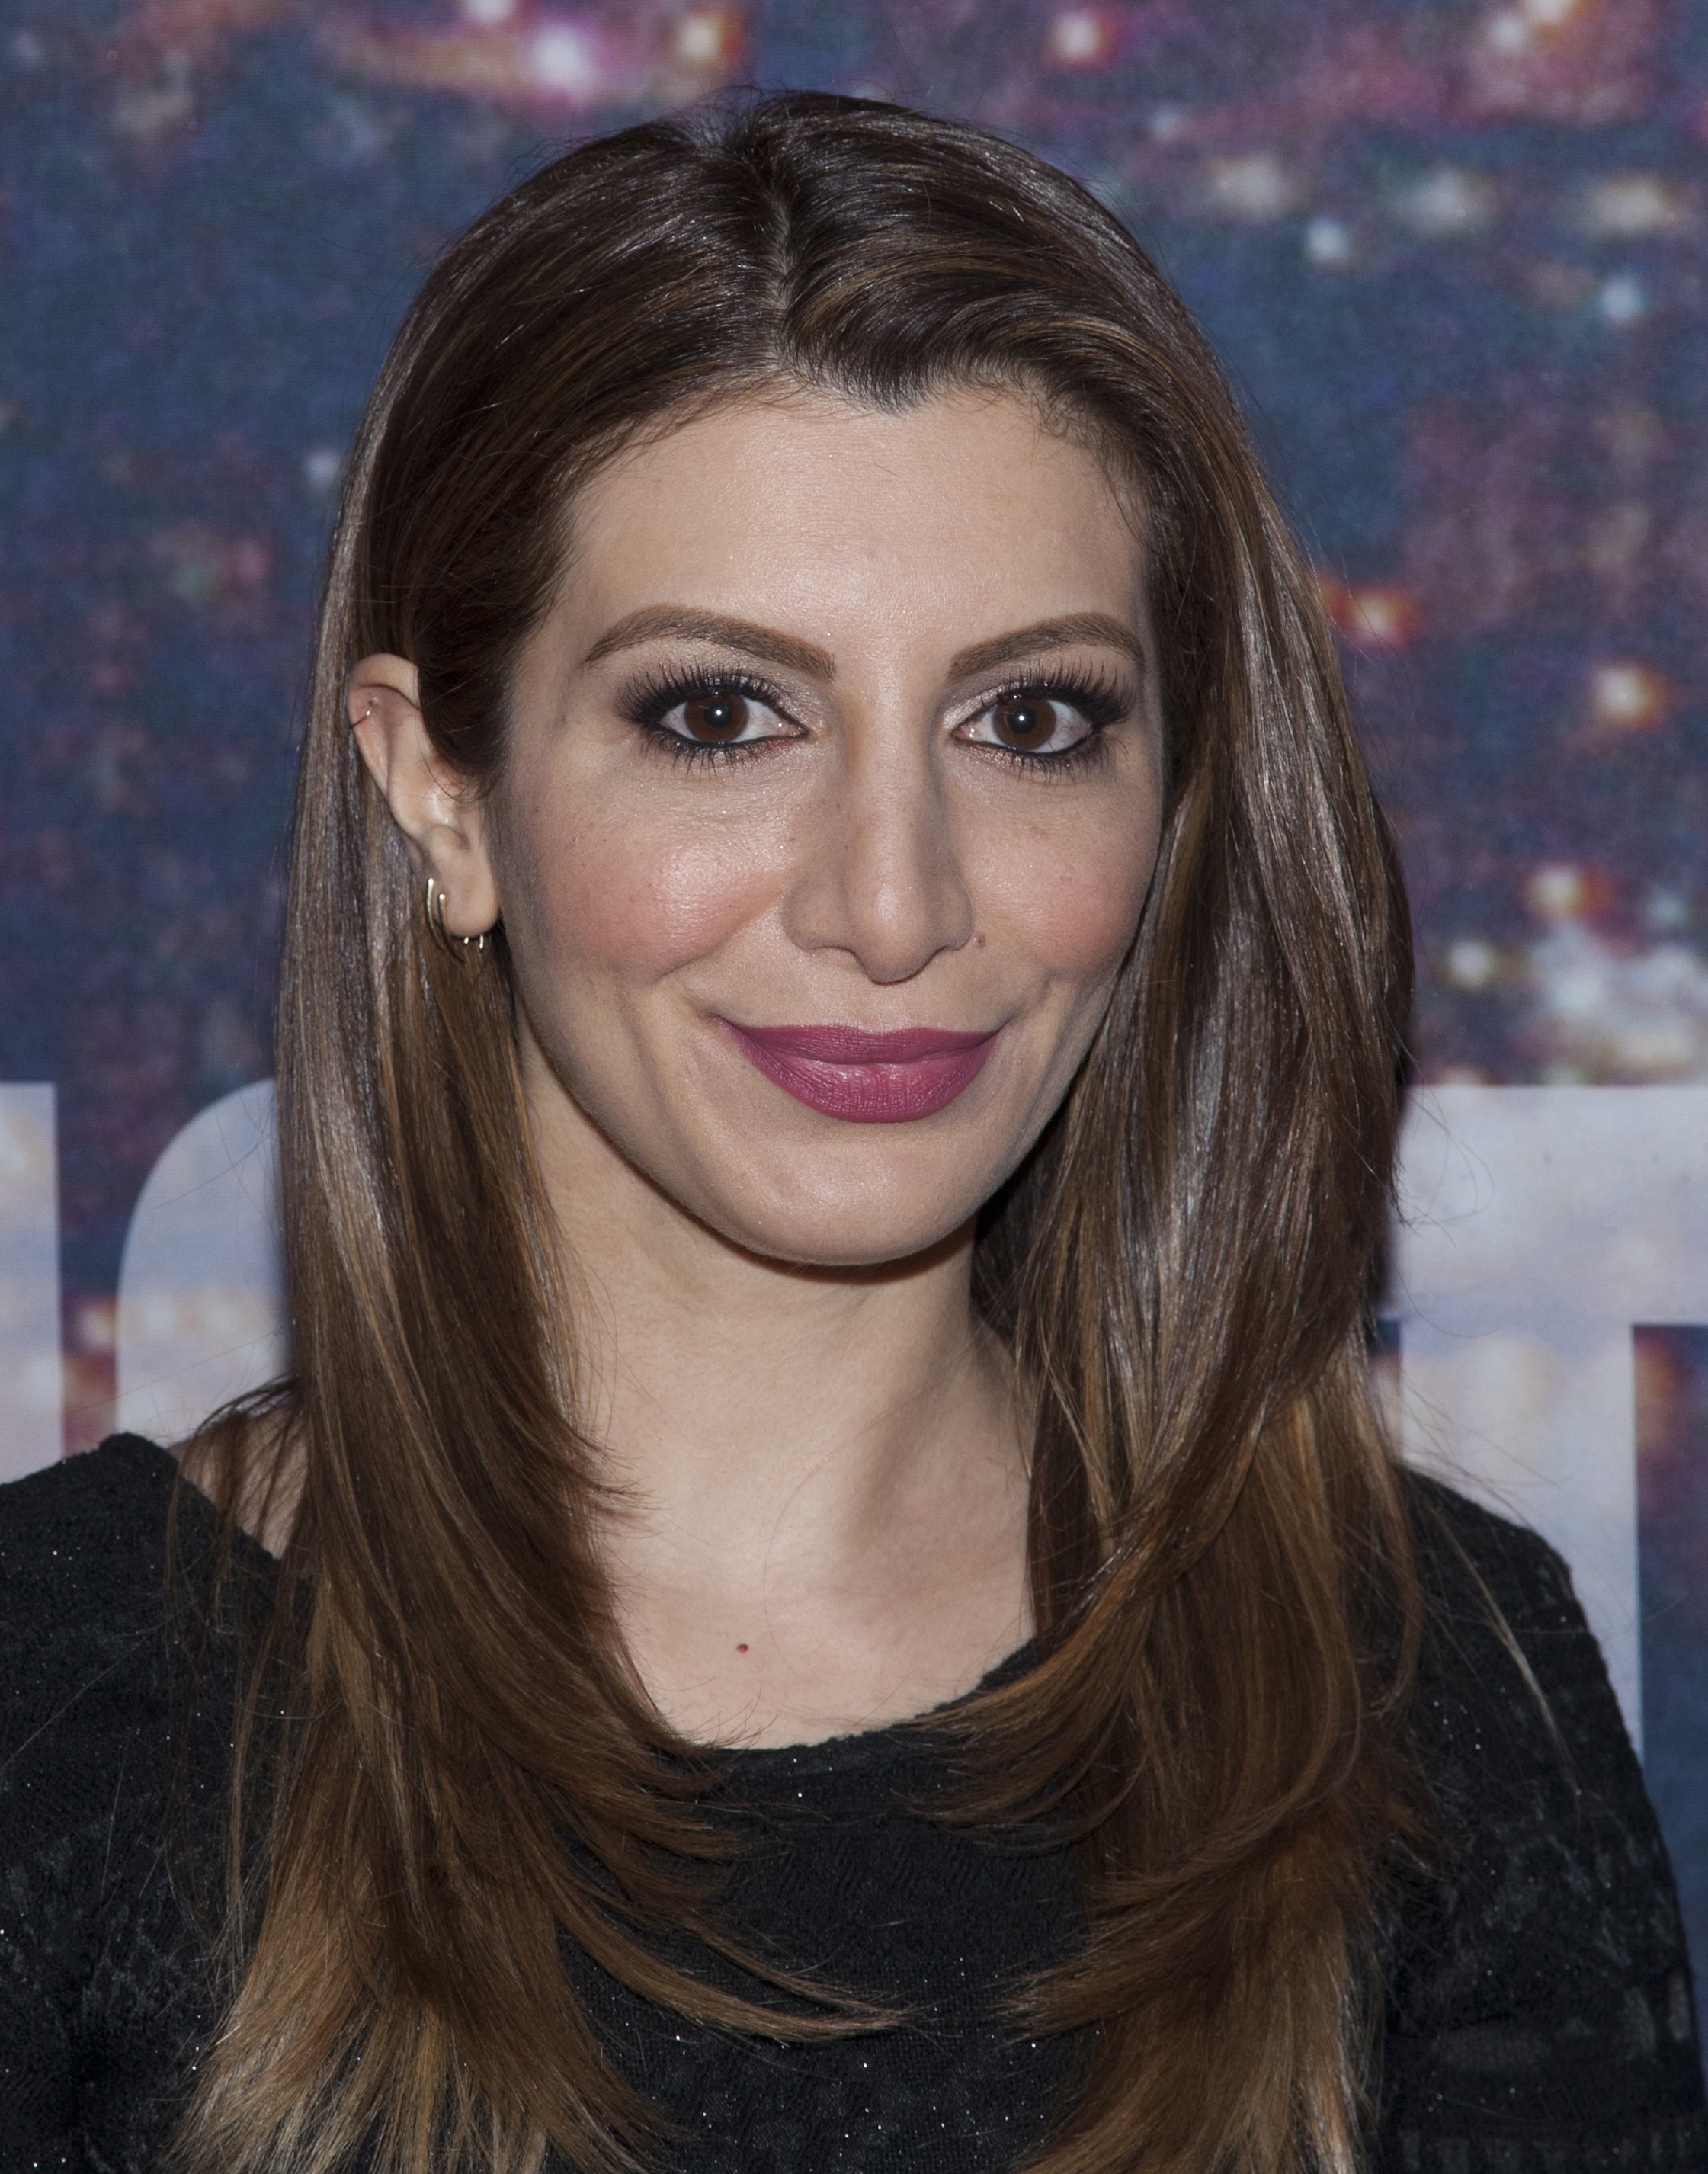 Nasim Pedrad at an event